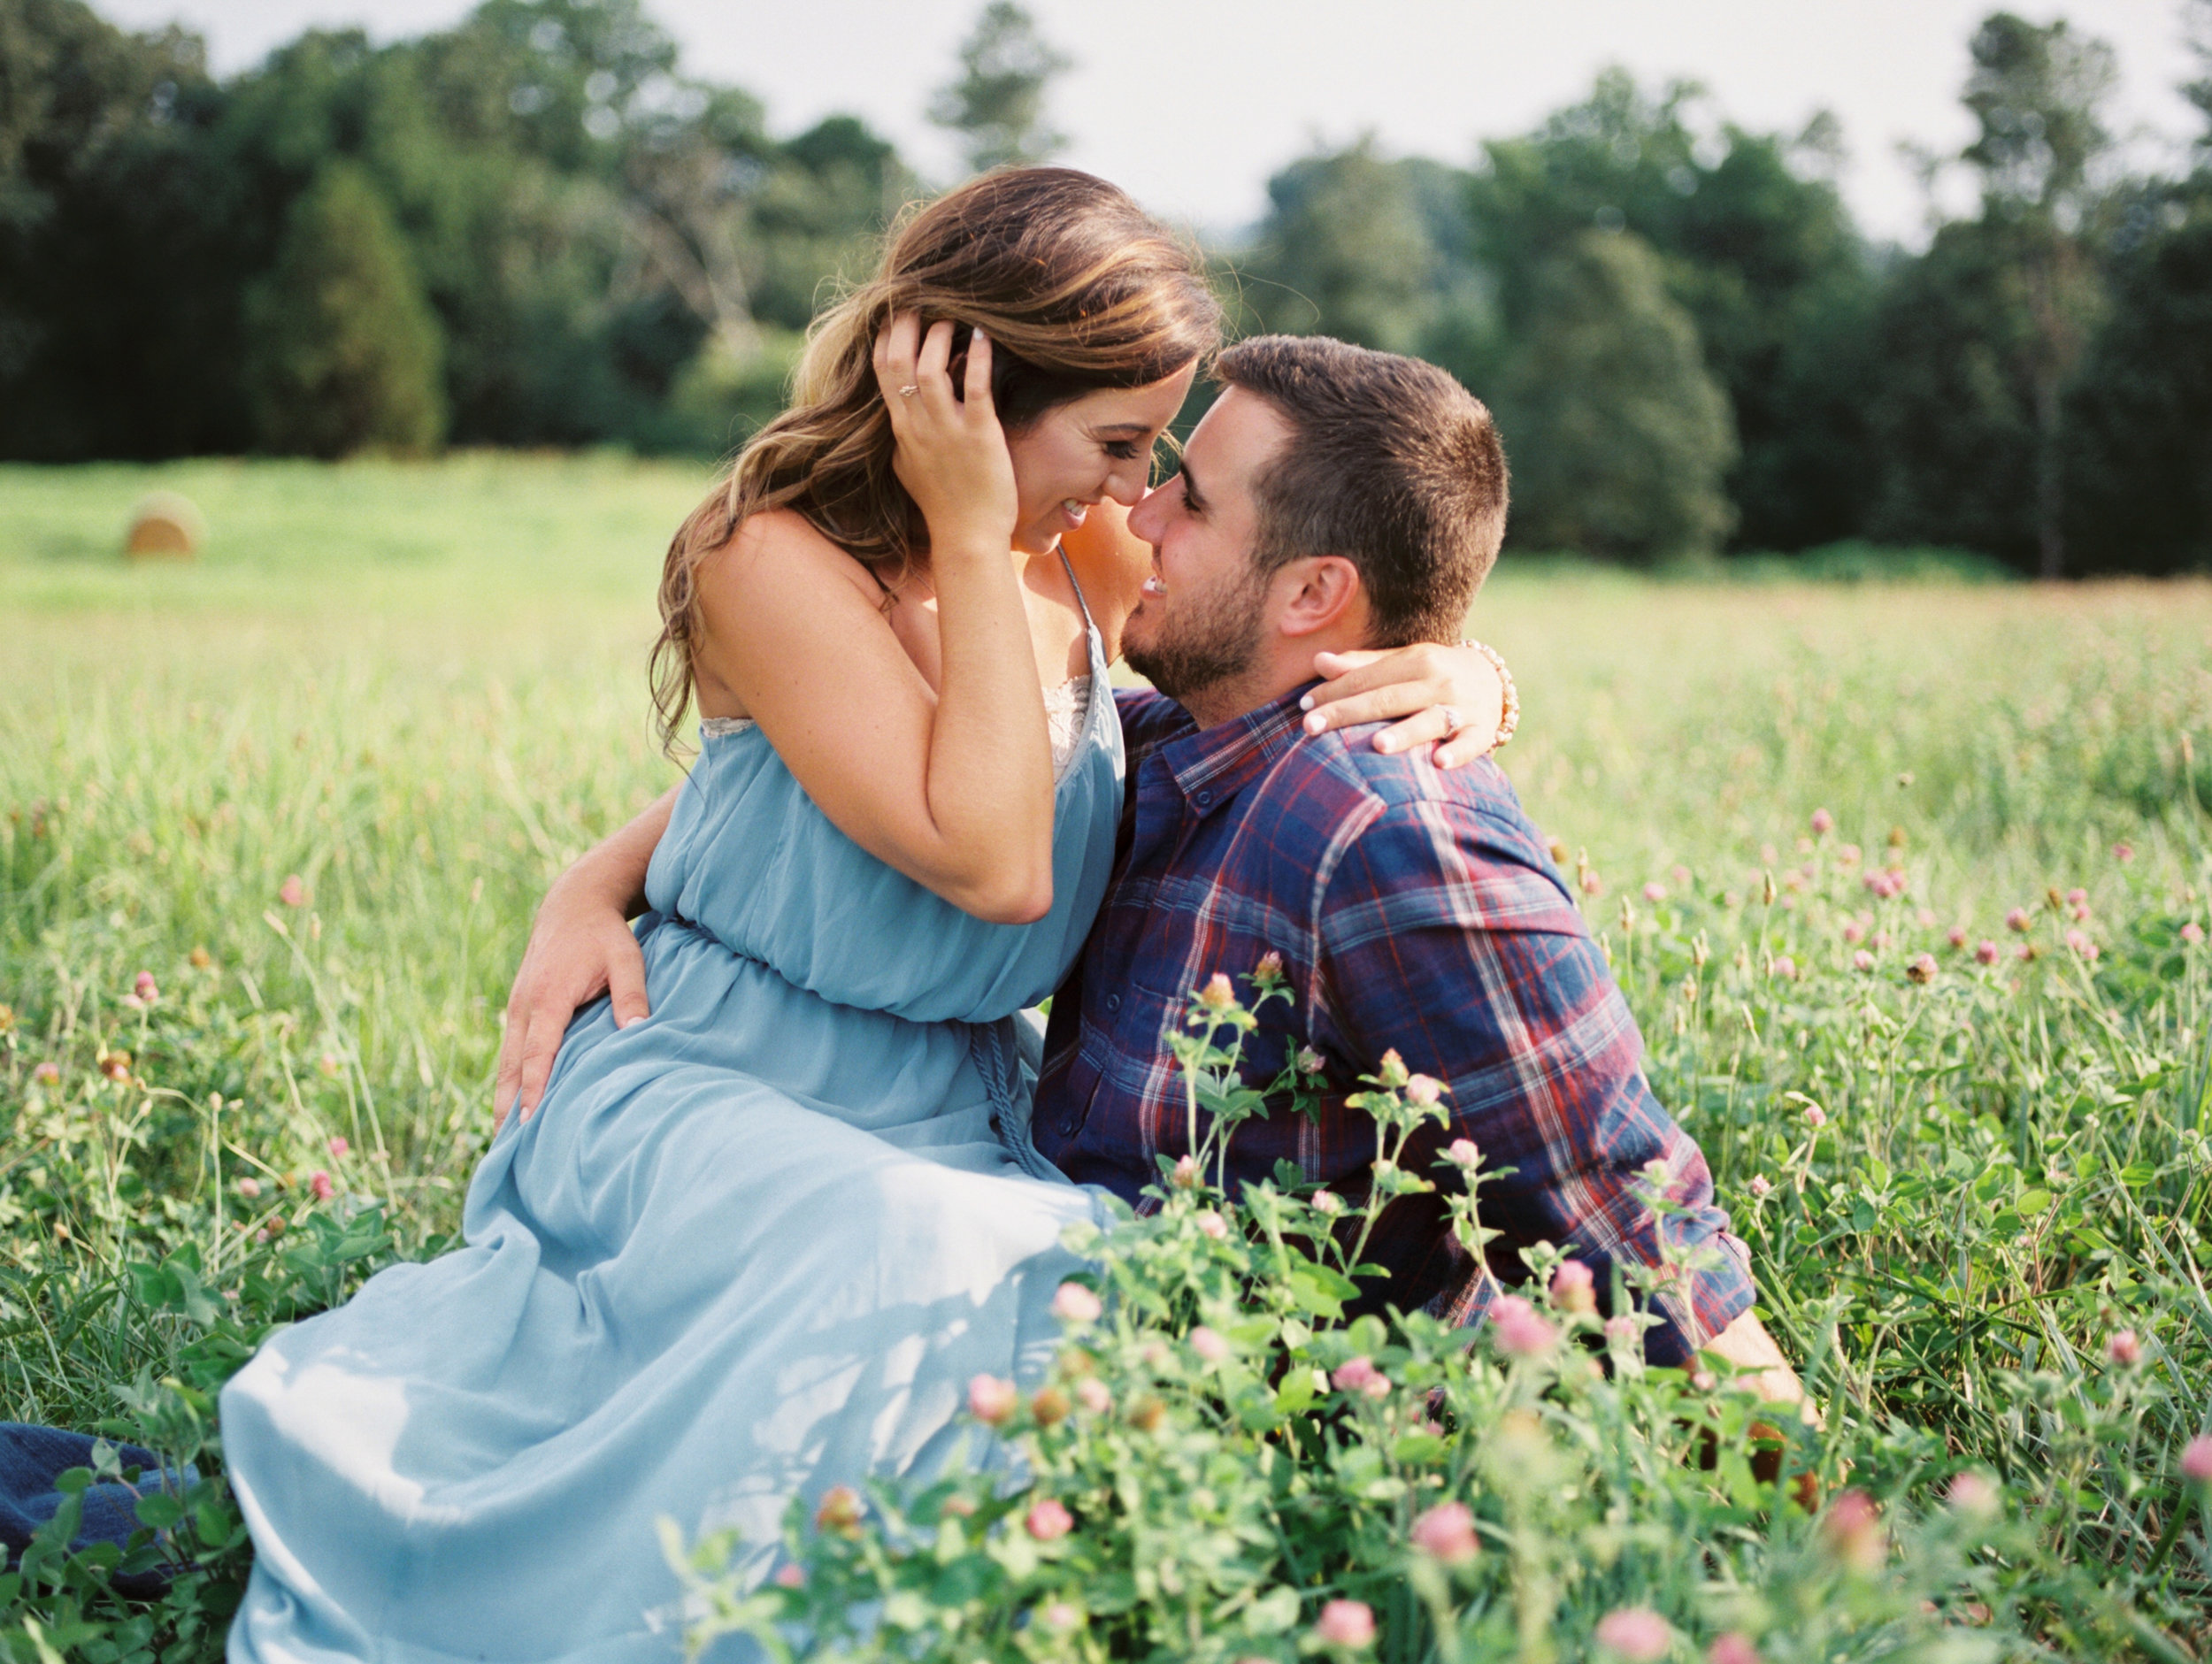 Brittany_Wes_Farm_Engagement_Abigail_Malone_Photography-84.jpg